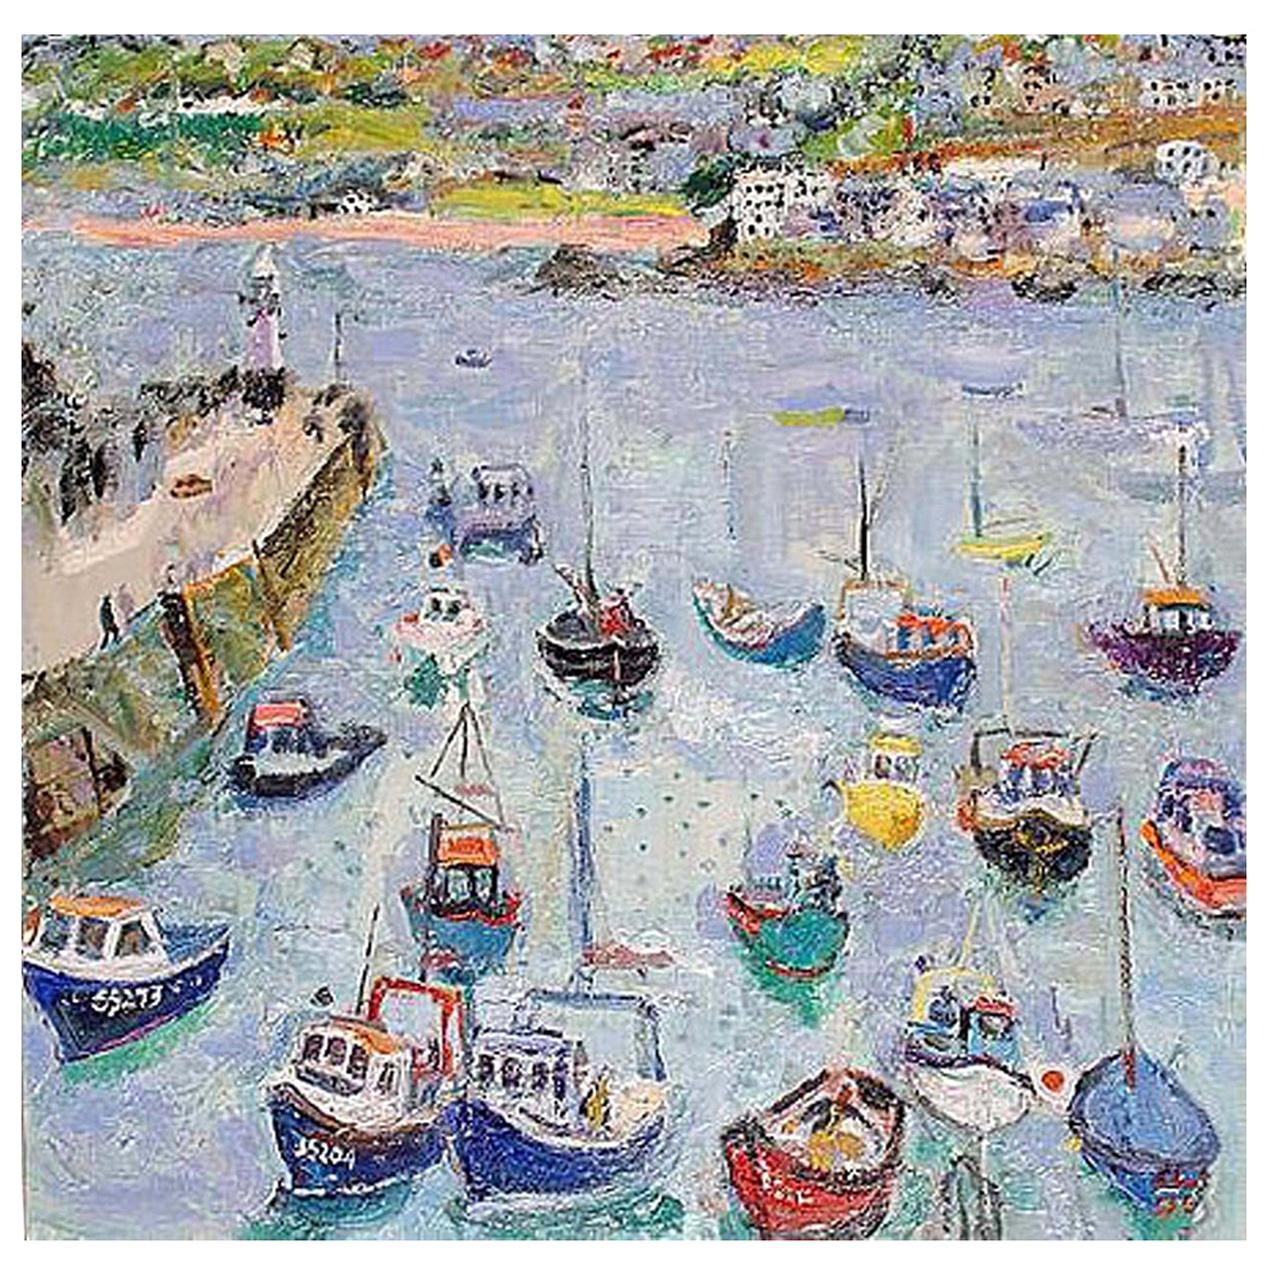 Linda Weir English St Ives Harbour Cornwall Oil on Canvas Painted in 2006